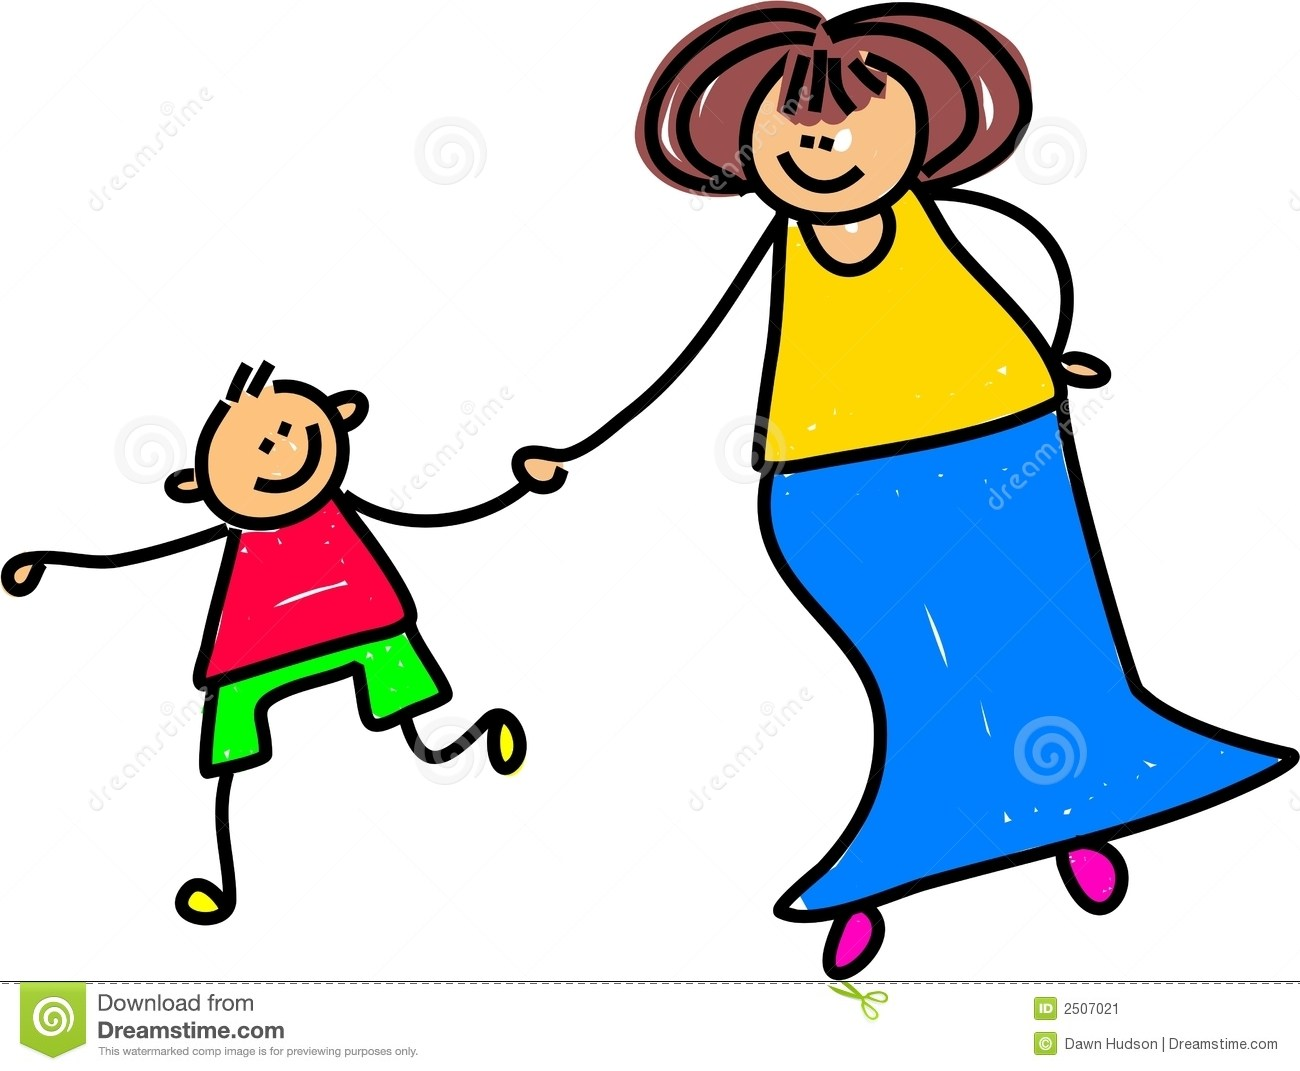 Mom and me clipart 3 » Clipart Portal.